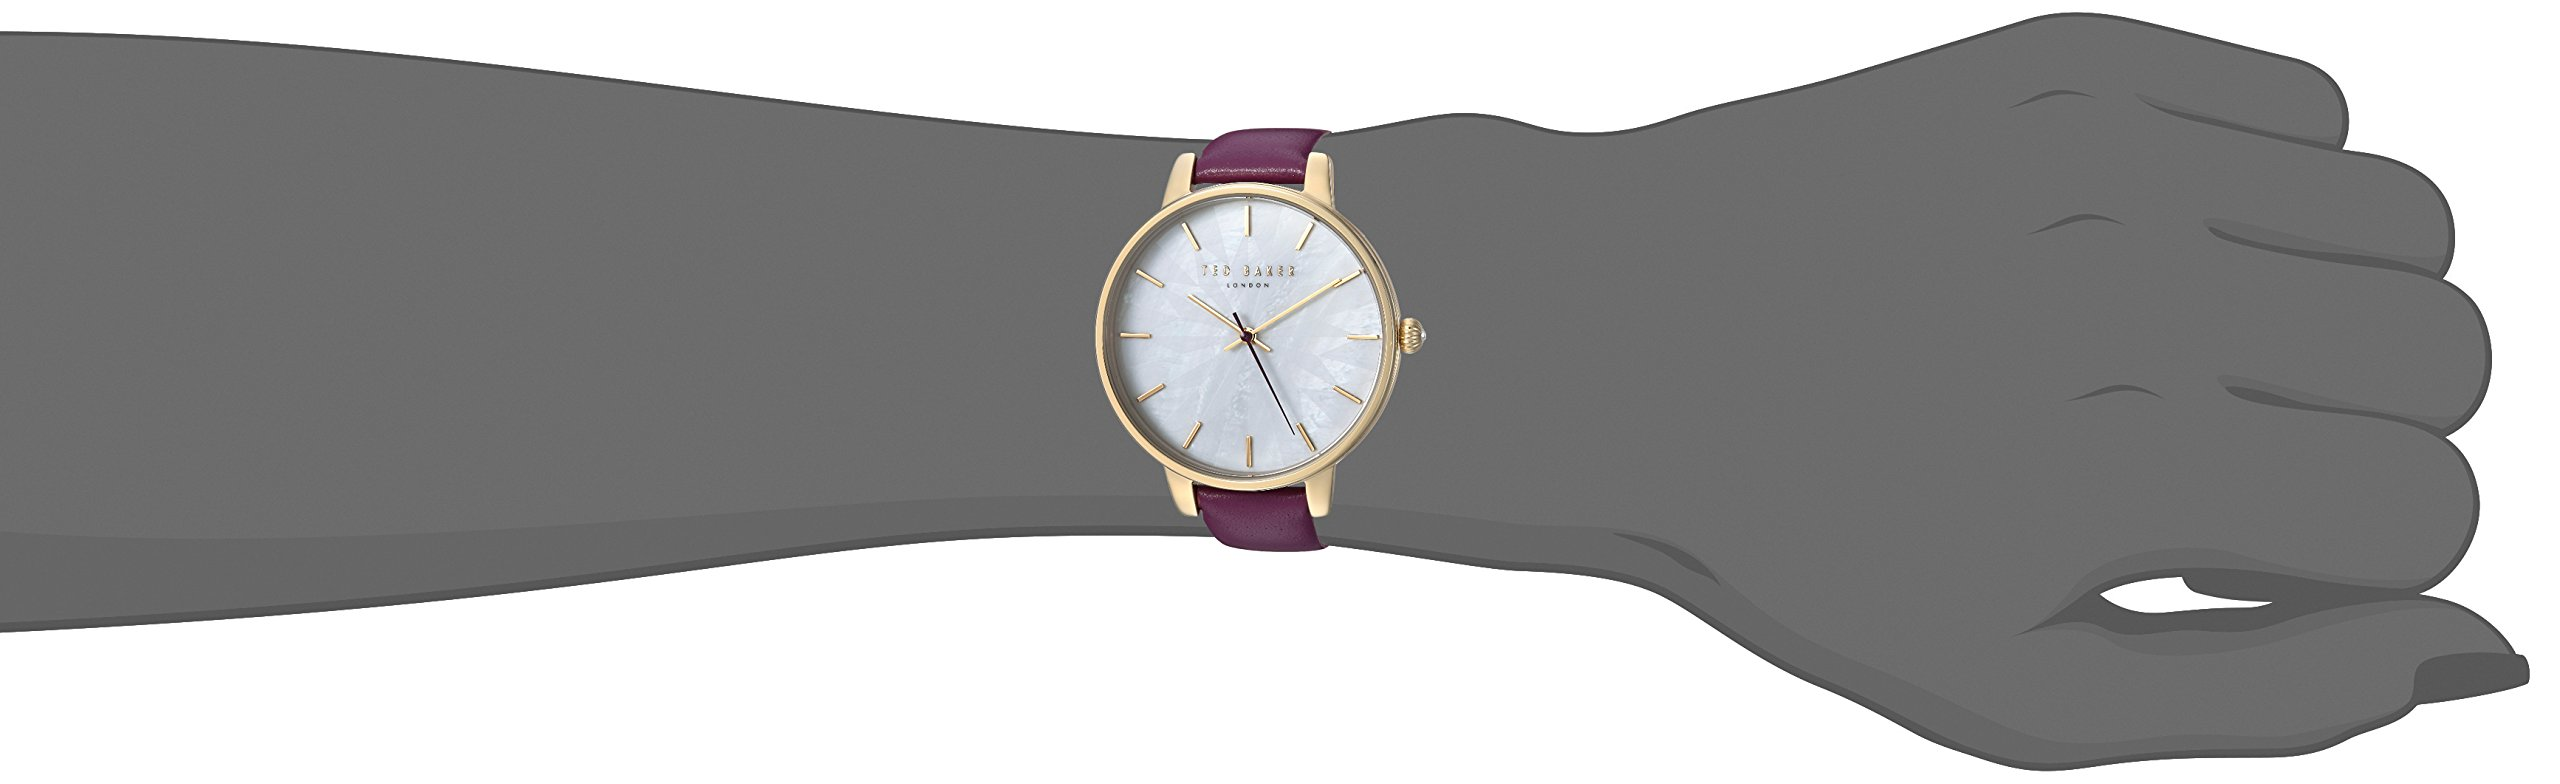 Ted Baker Women's Quartz Stainless Steel and Leather Casual Watch, Color:Purple (Model: TE15200002) by Ted Baker (Image #2)